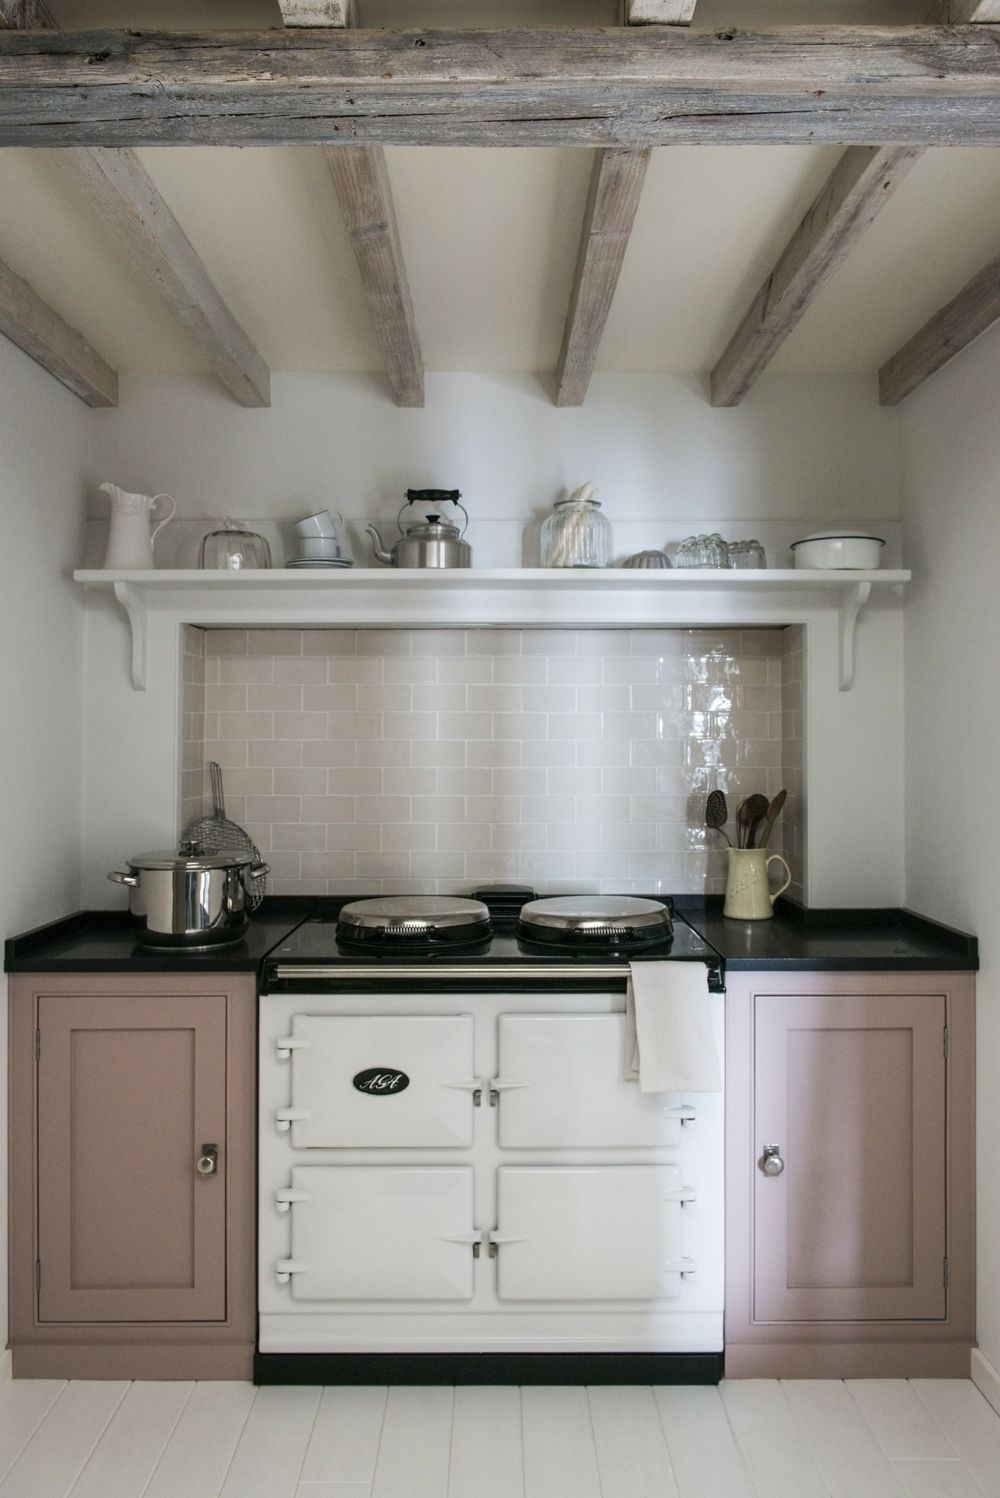 Contemporary Country Kitchens: The AGA